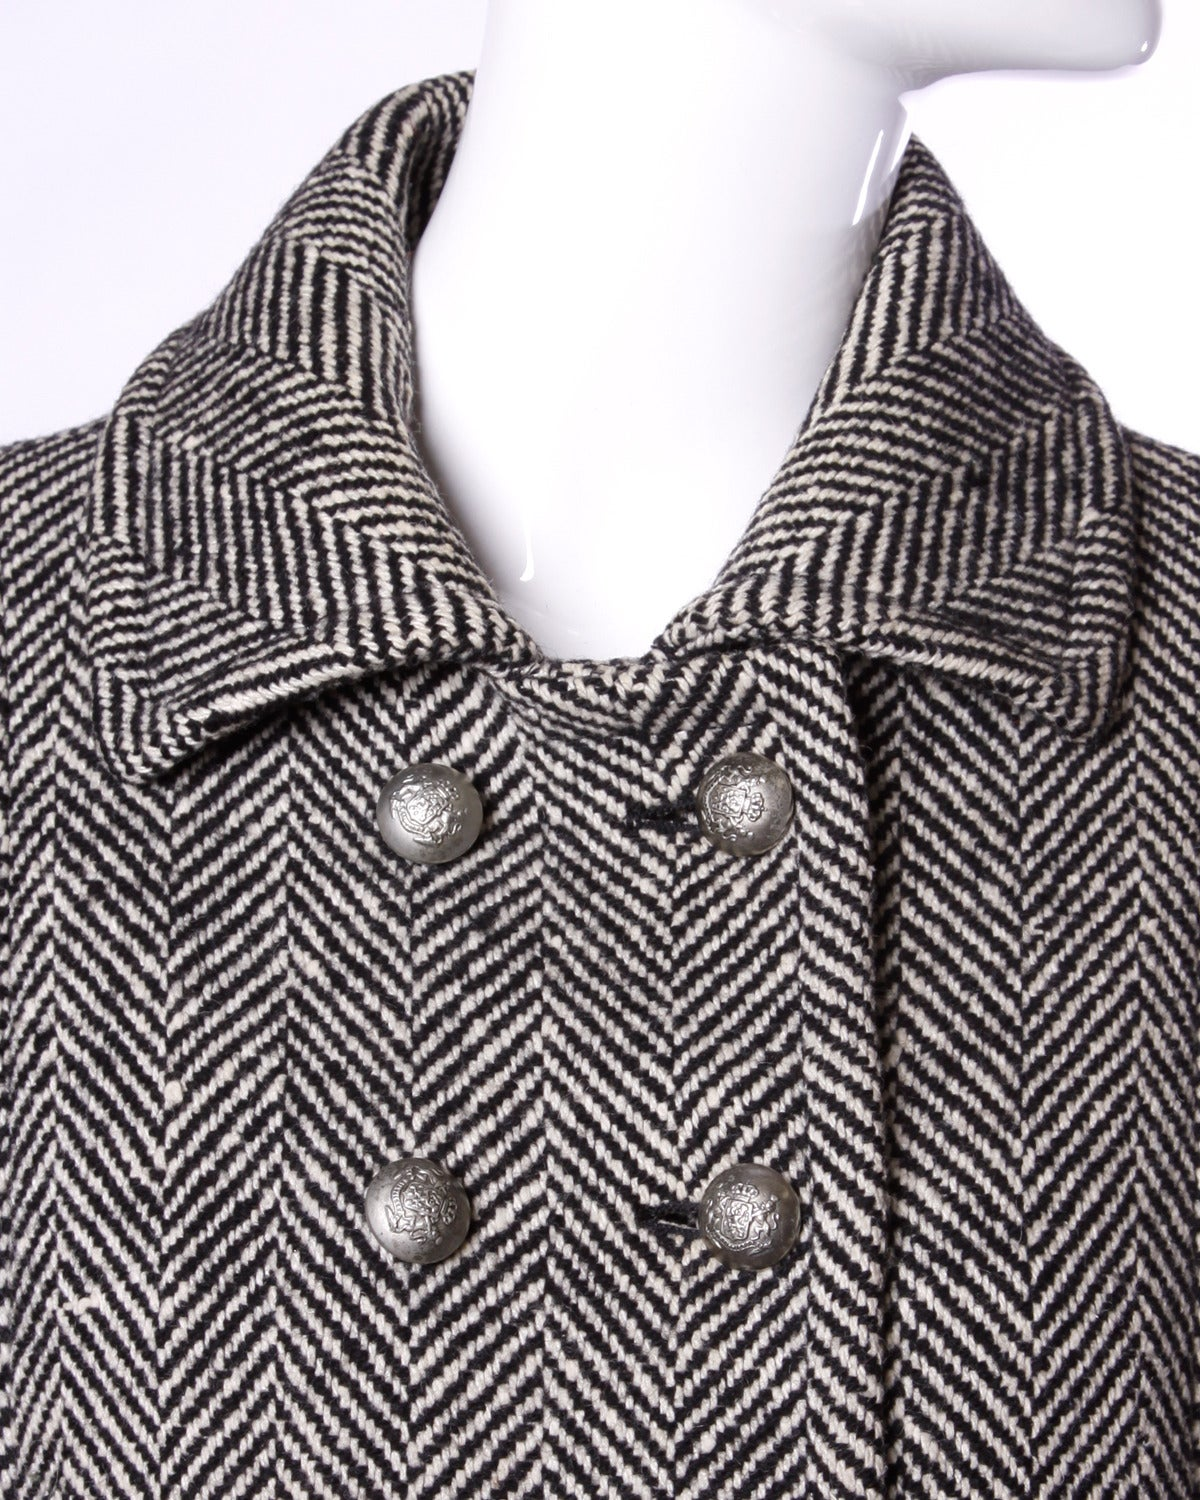 Gorgeous black and white military-inspired herringbone coat by Jean Louis Scherrer for Marshall Field & Company. Heavy silvertone double breasted buttons and classic shape. Hand tailoring and gorgeous quality.